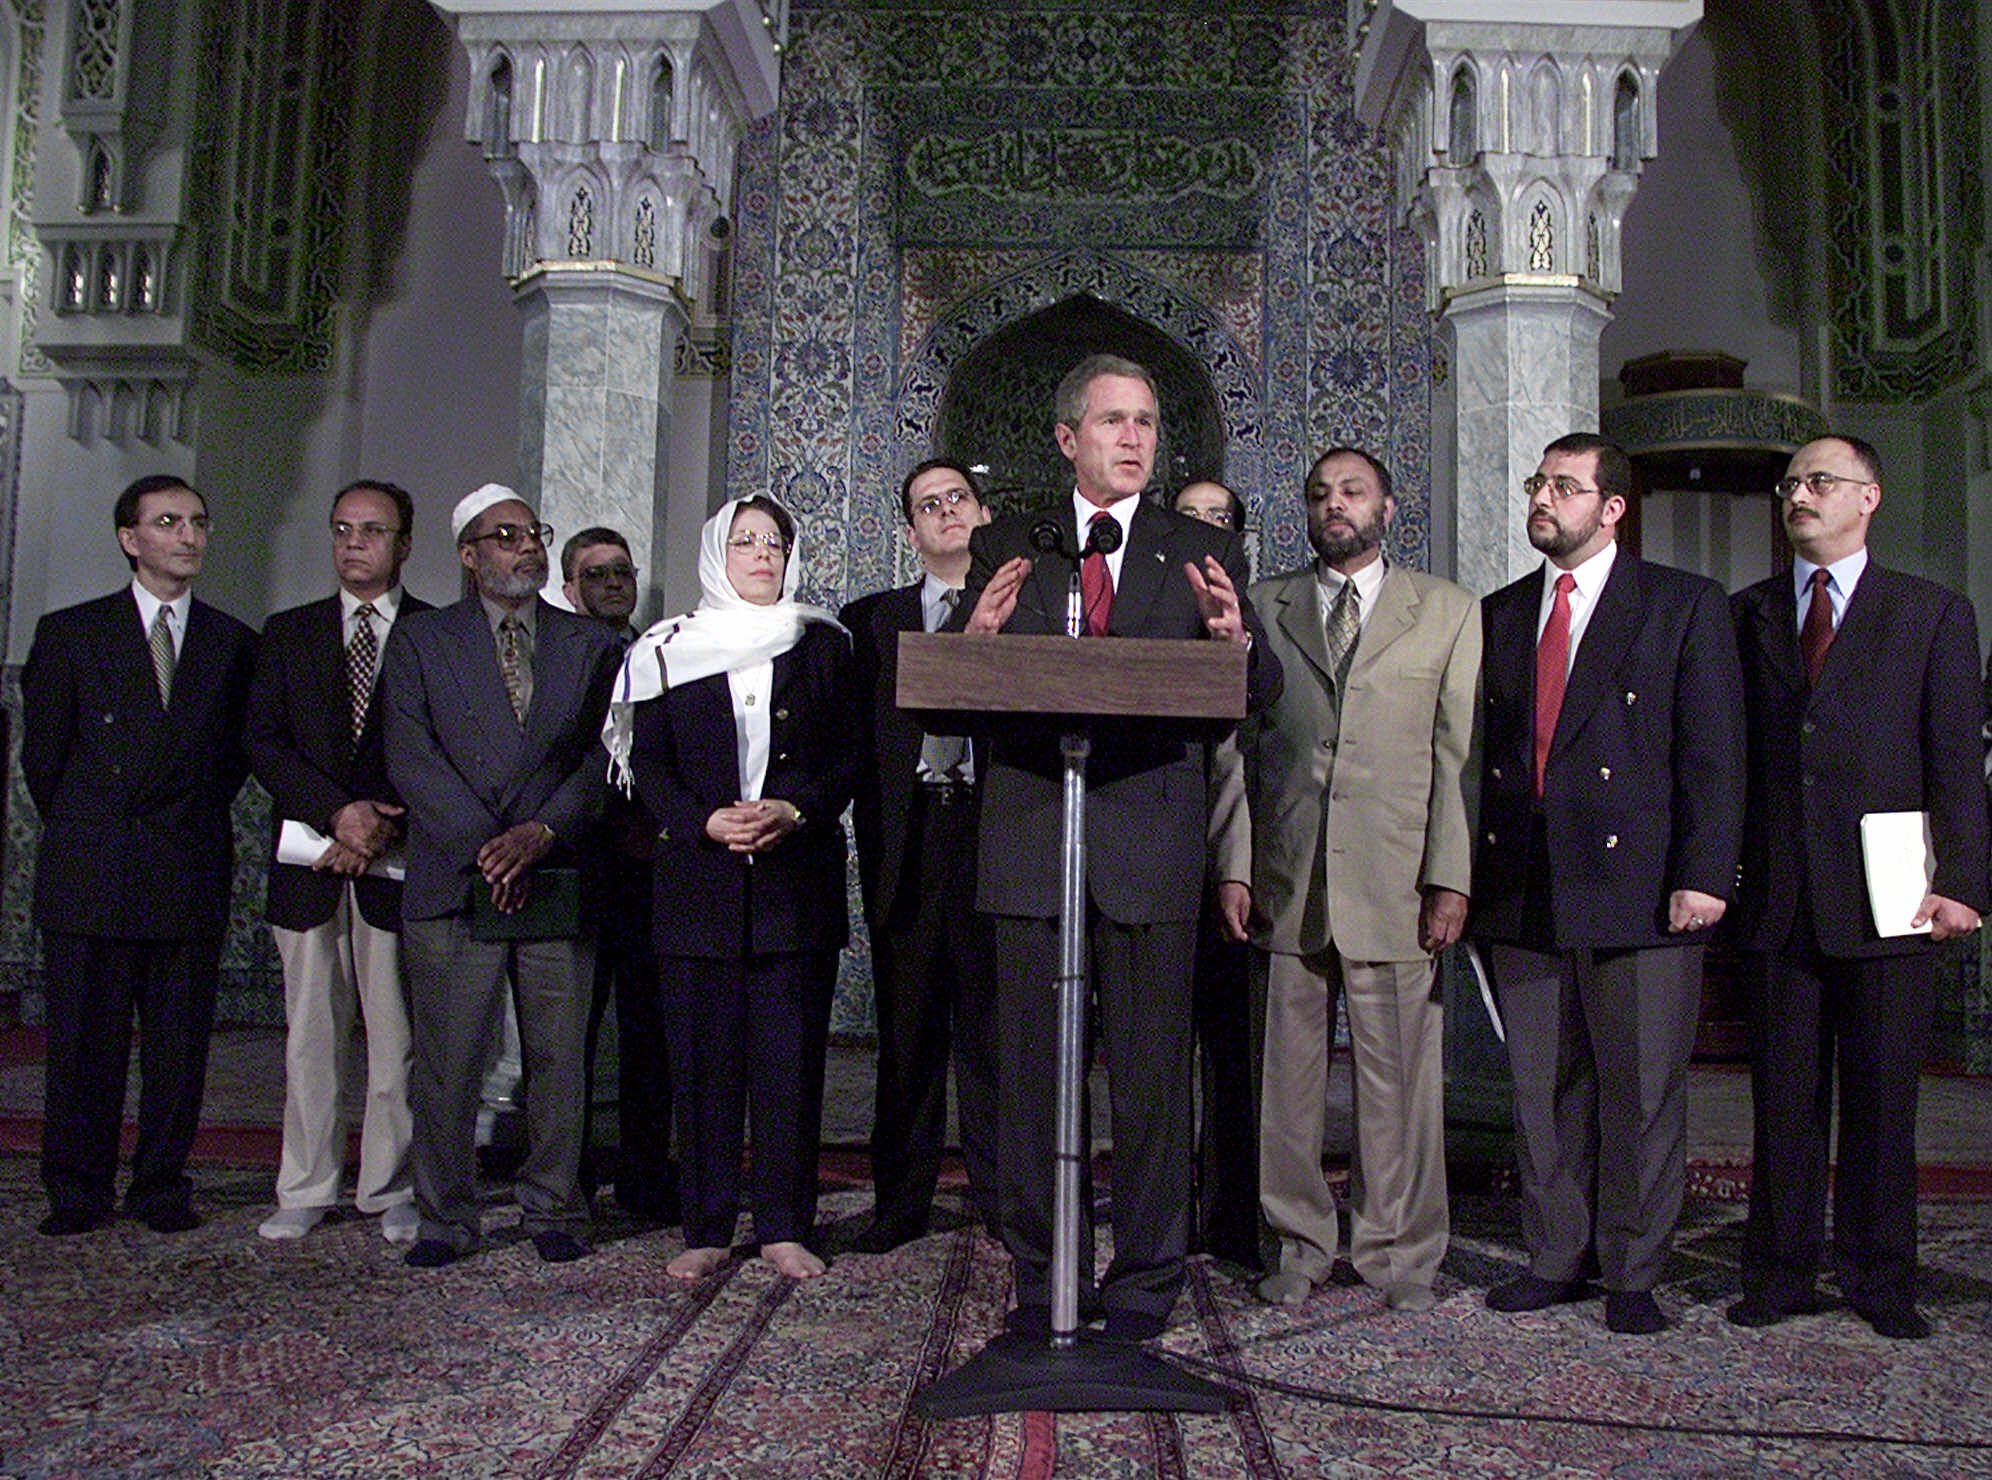 President Bush stands with Islamic leaders during a visit to the Islamic Center of  Washington, Sept. 17, 2001, to try to put an end to rising anti-Muslim sentiment in the wake of 9/11.